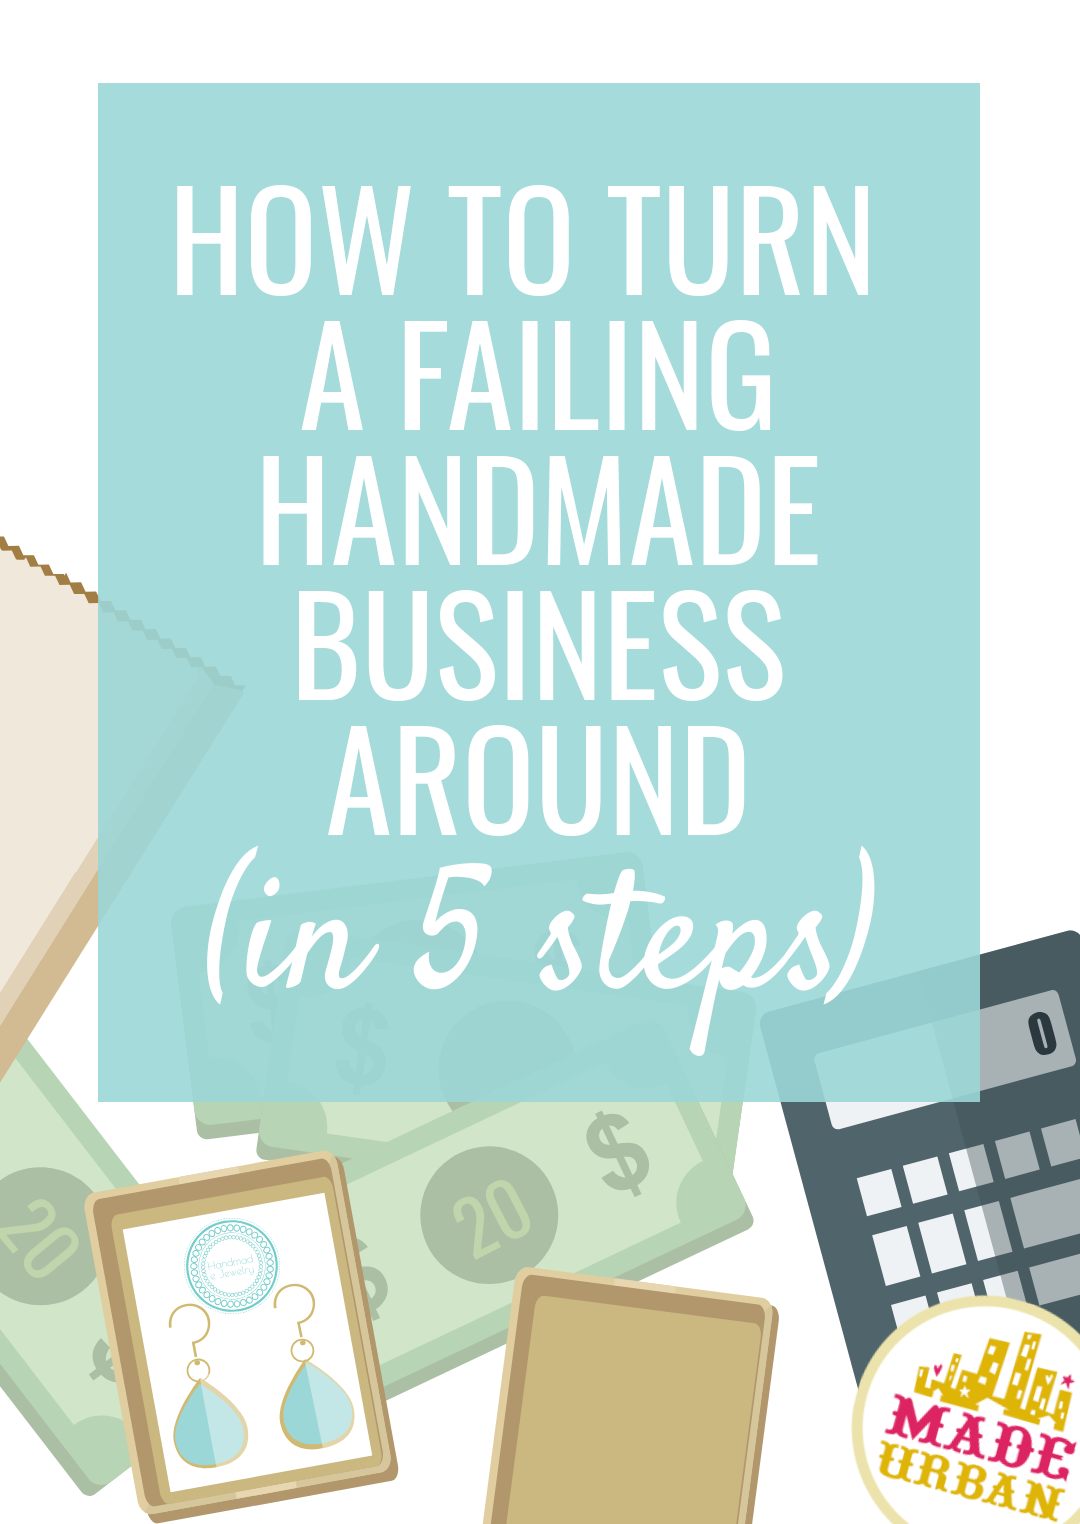 If you're feeling hopeless about your handmade business, or just a part of your business, and like it's failing, have a read over this article with 5 steps I followed when I turned my failing business around.